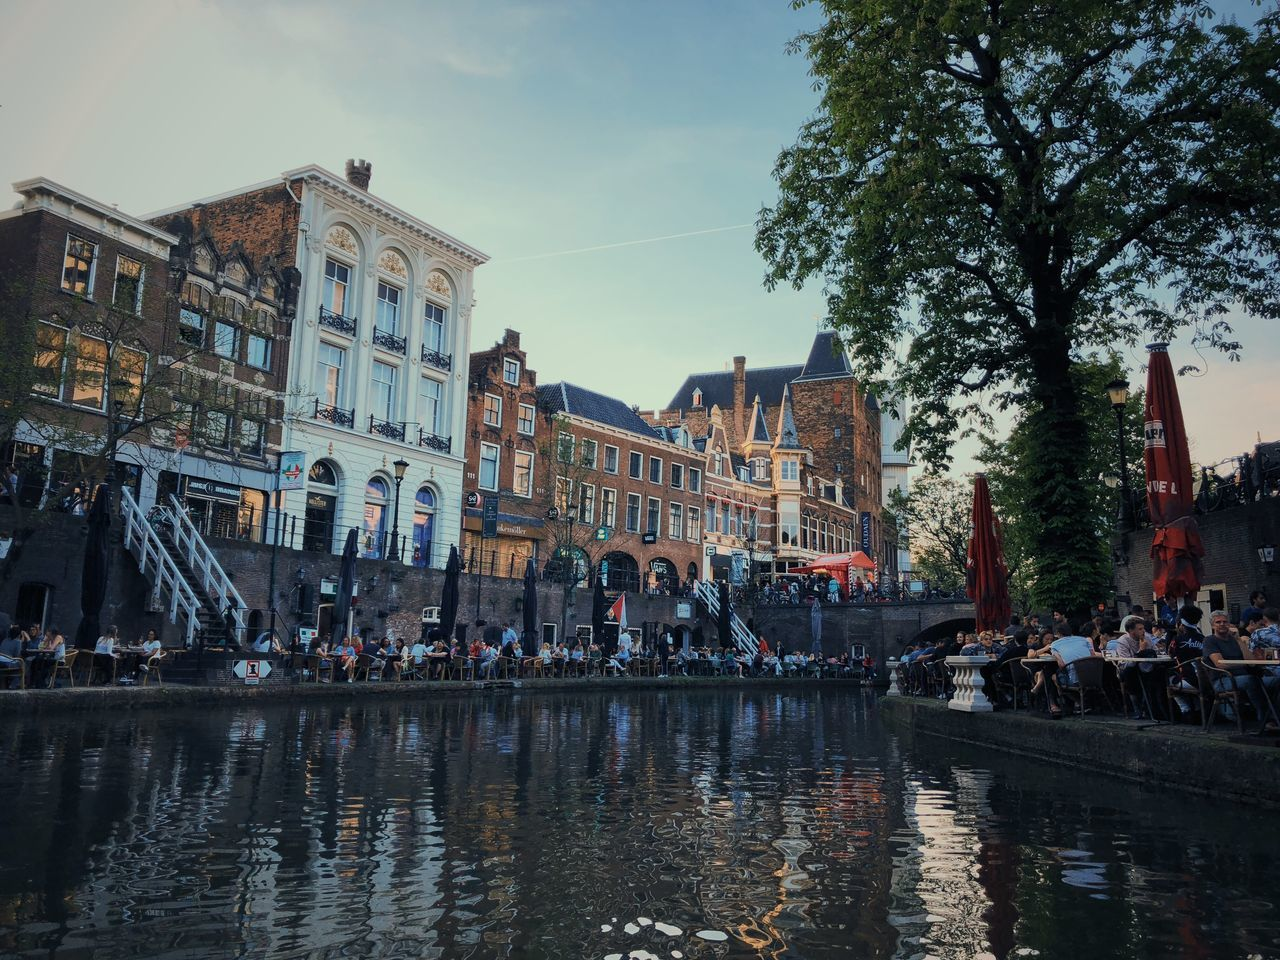 GROUP OF PEOPLE ON BUILDINGS BY CANAL